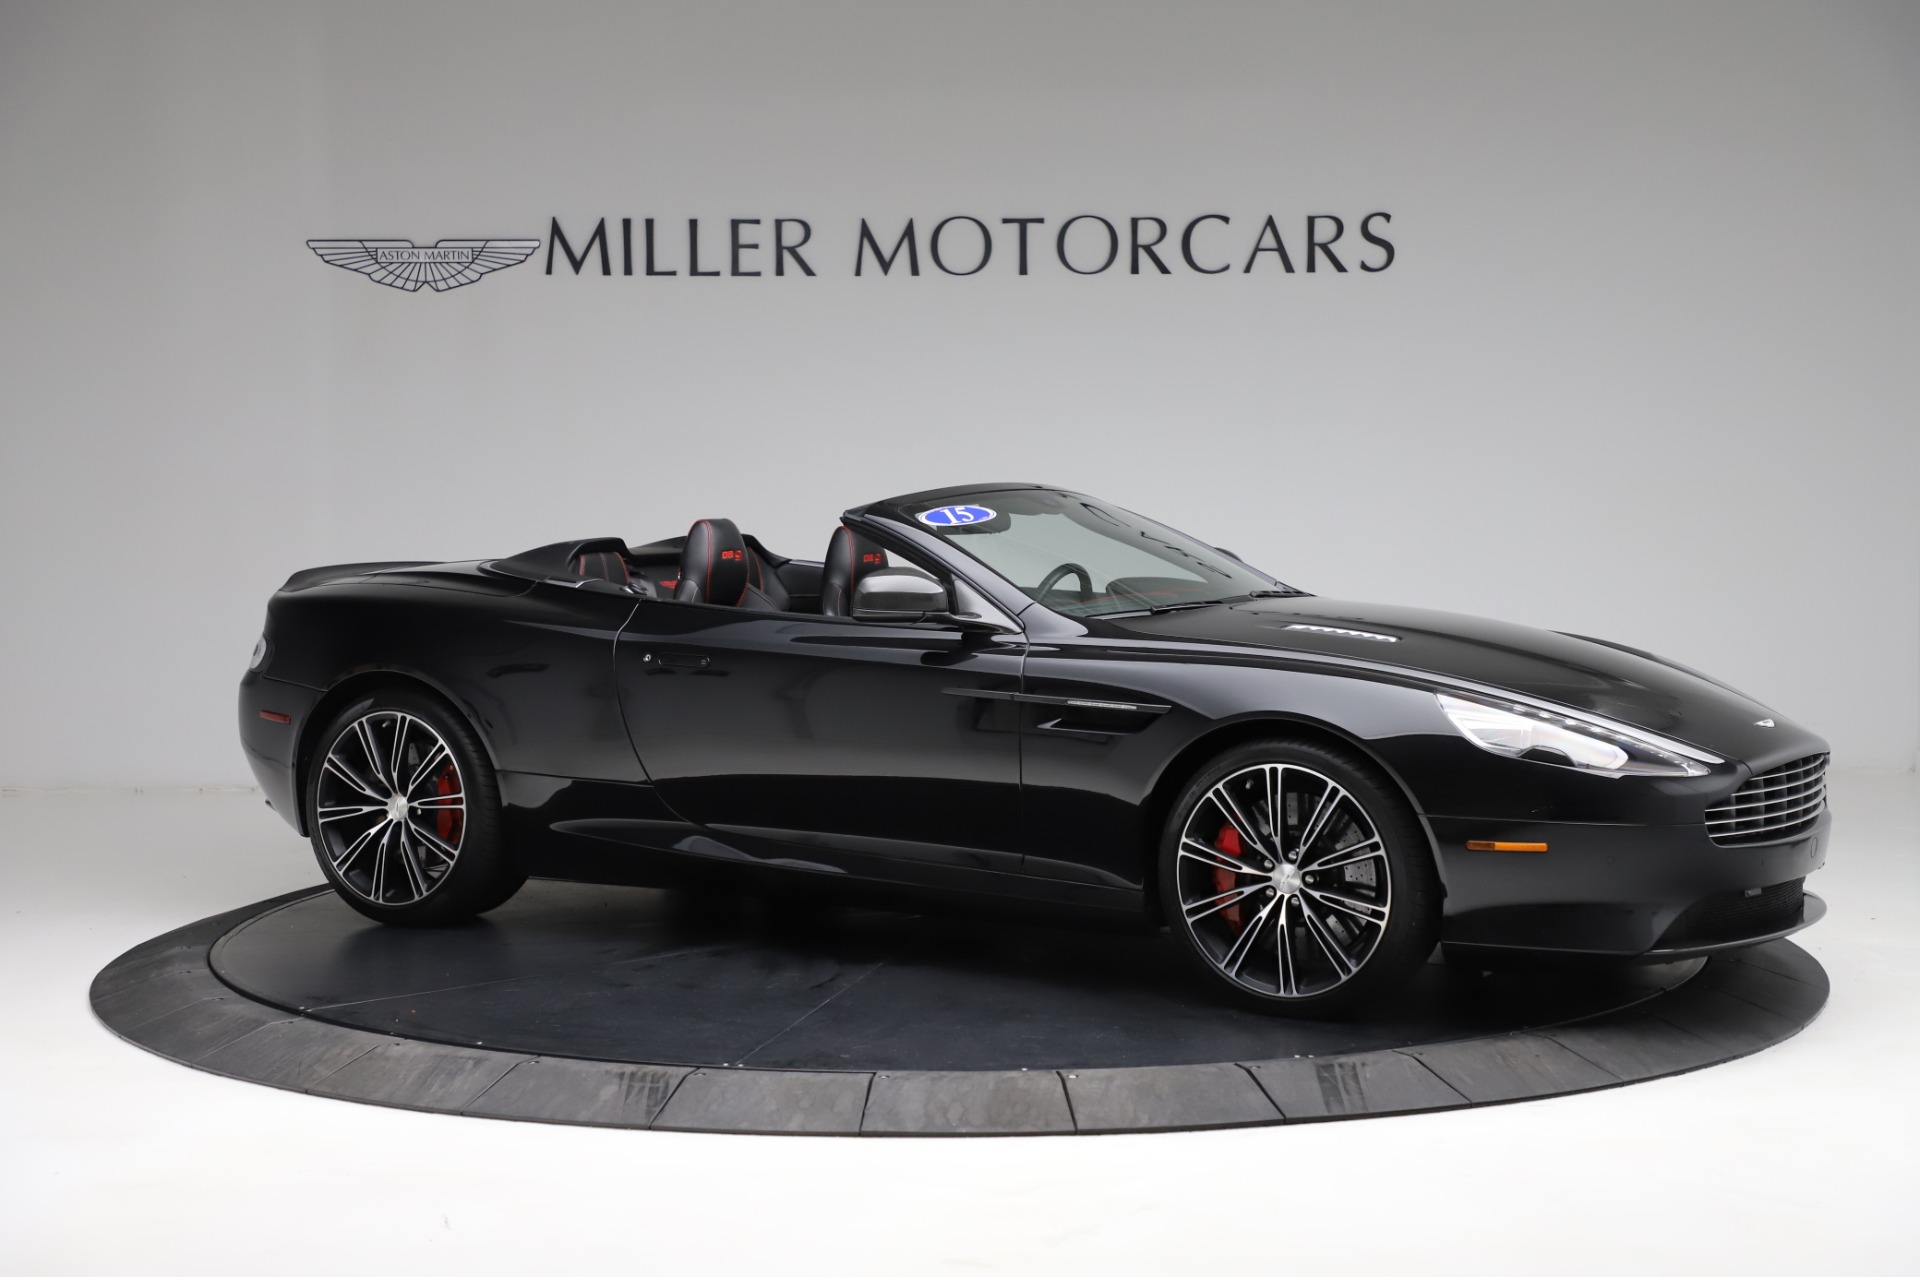 Used 2015 Aston Martin DB9 Convertible For Sale In Westport, CT 1919_p9